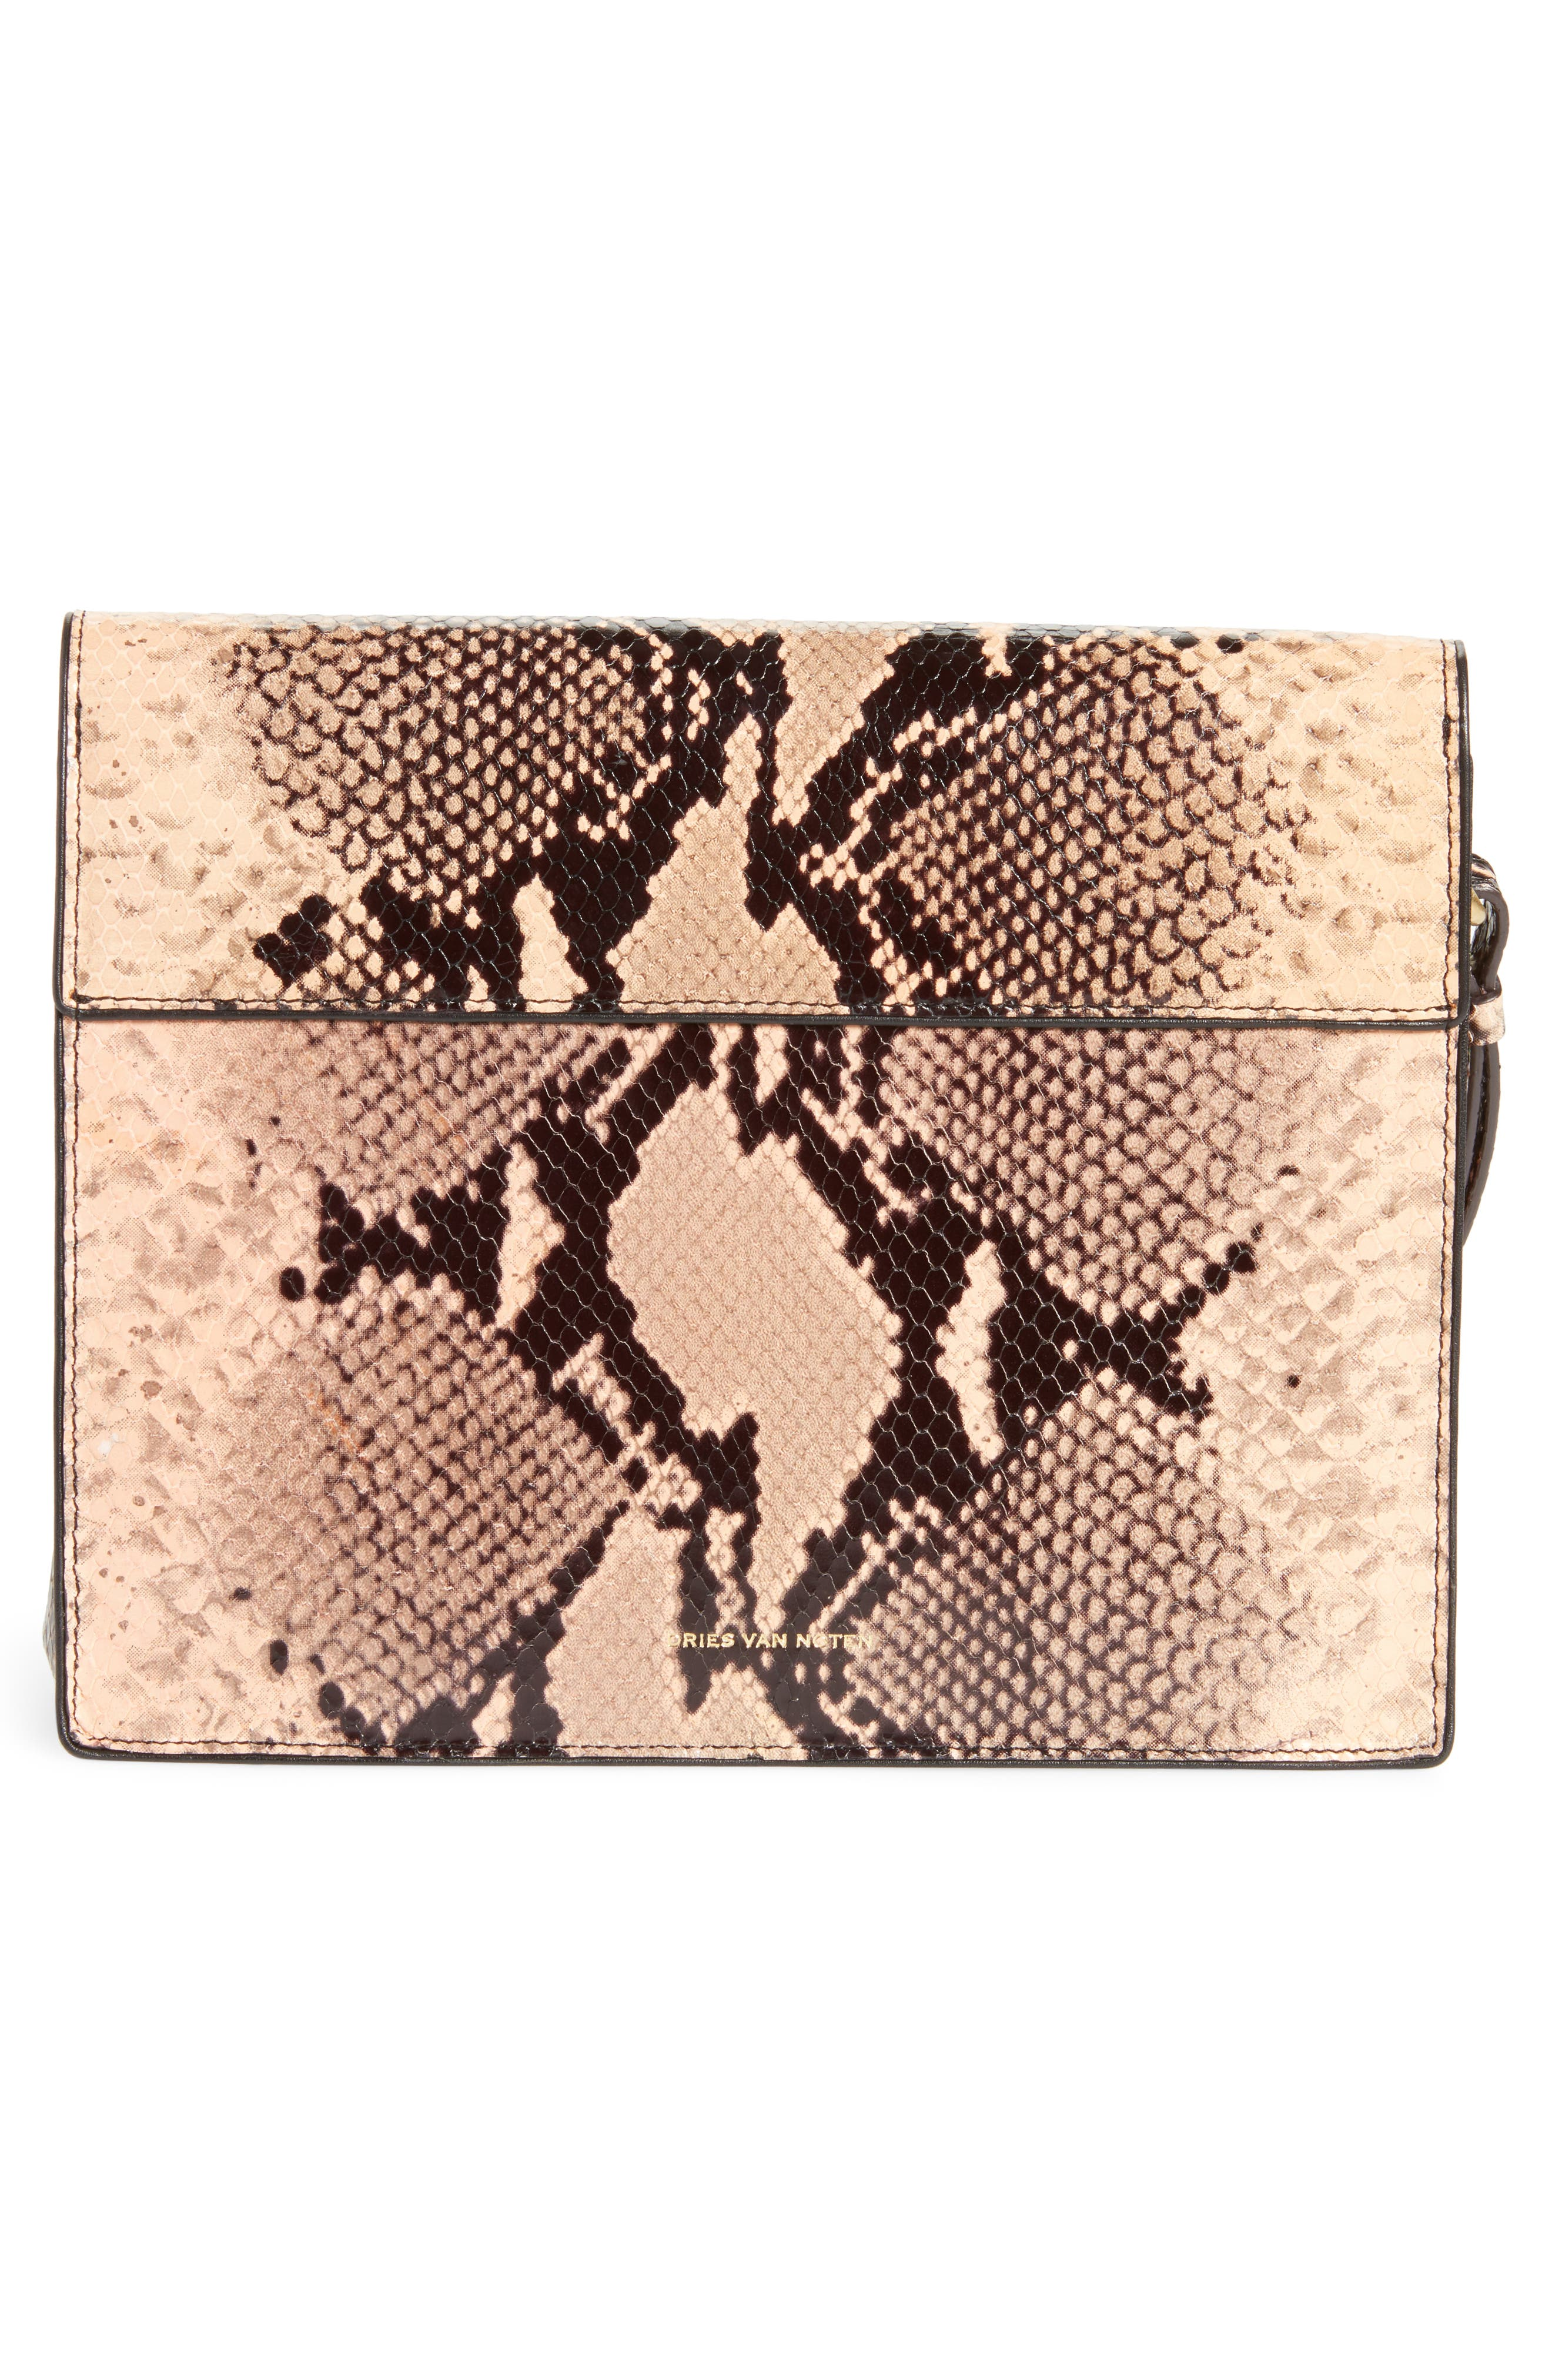 Snake Embossed Leather Wristlet Clutch,                             Alternate thumbnail 3, color,                             200